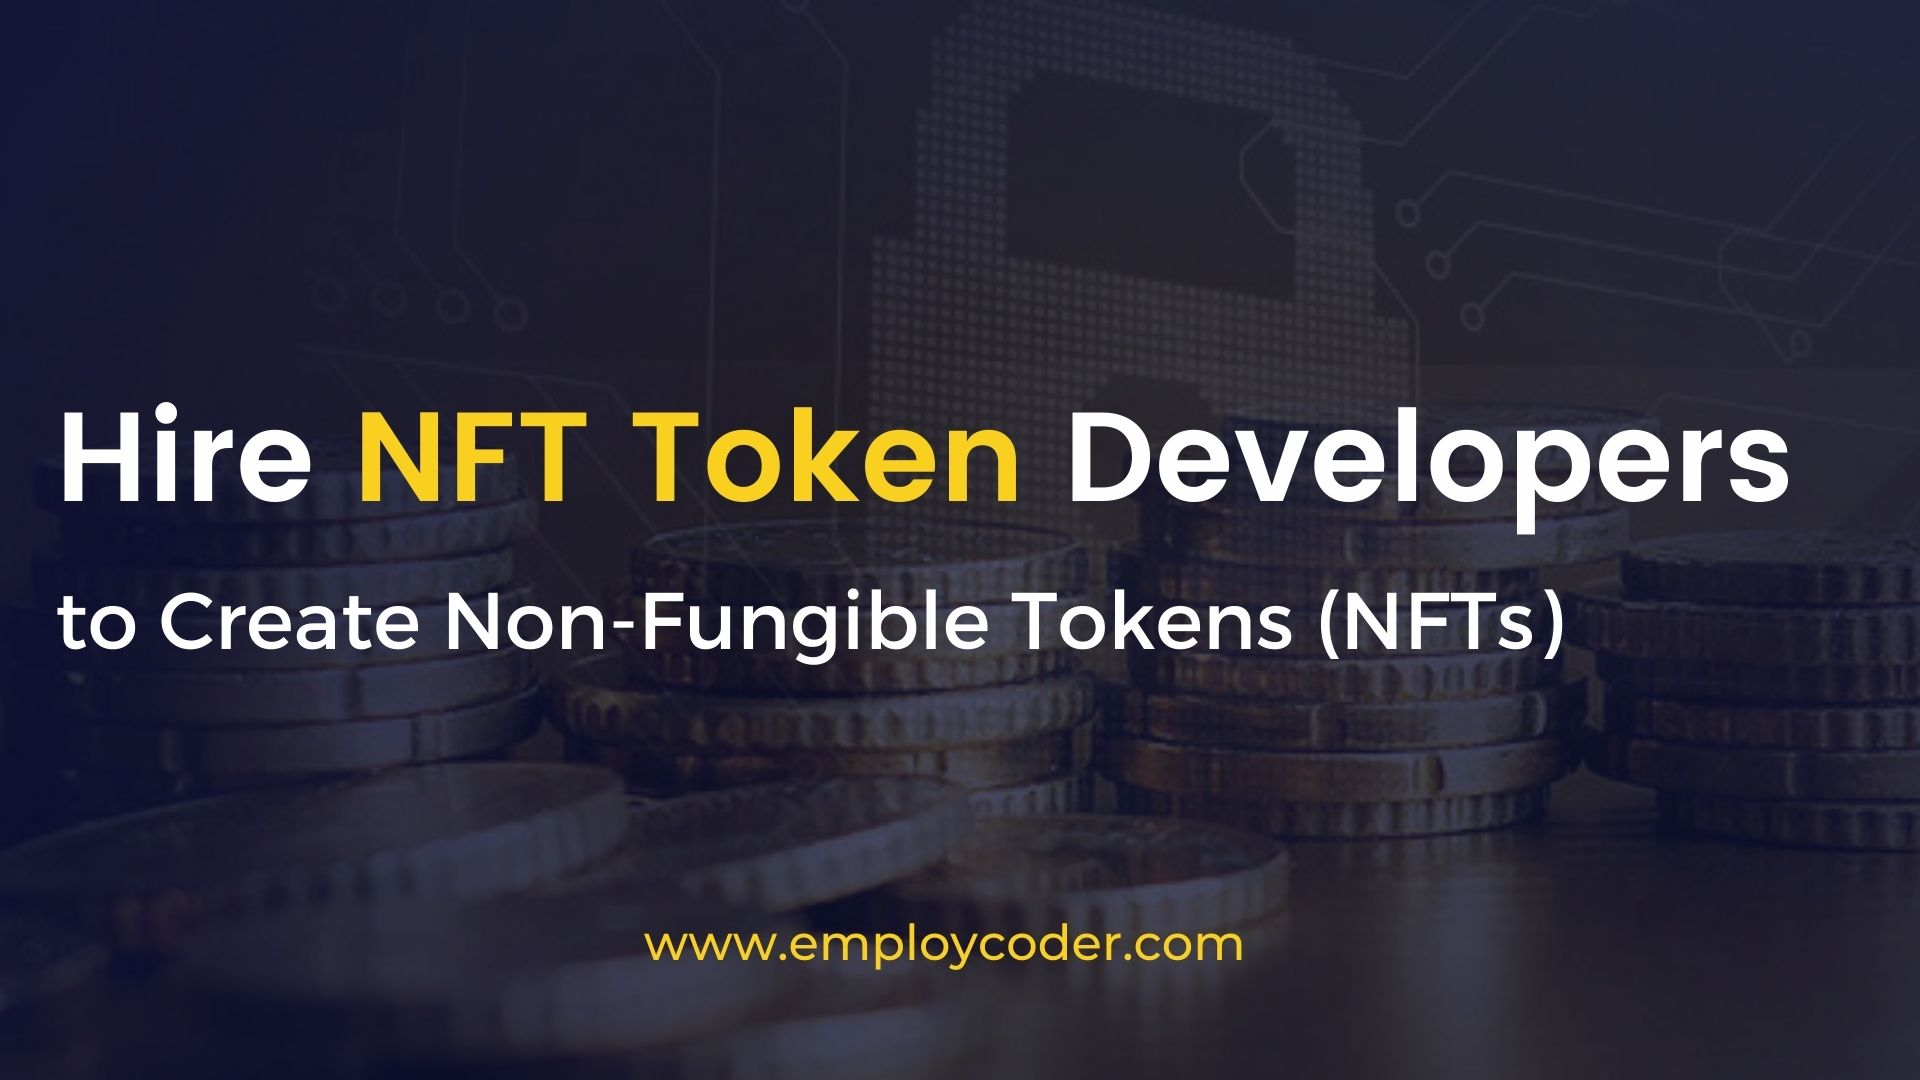 Hire NFT Token Developers to Create your own Unique NFT Token